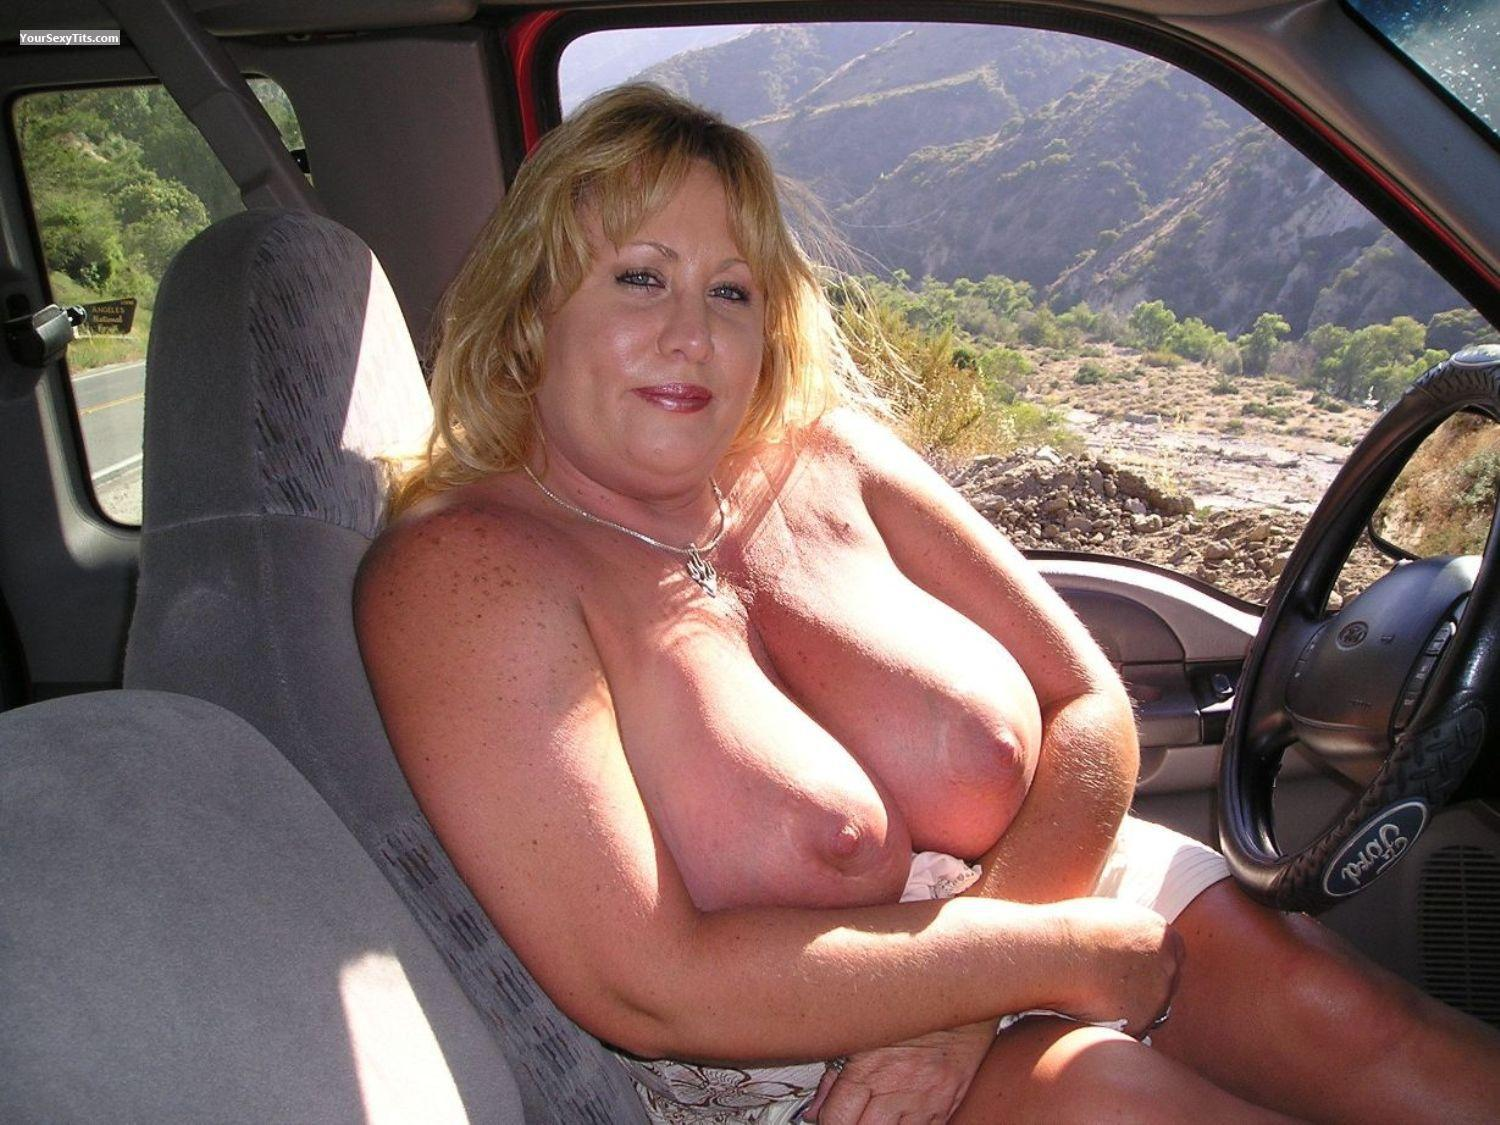 Tit Flash: Very Big Tits - Topless Lisa from United States